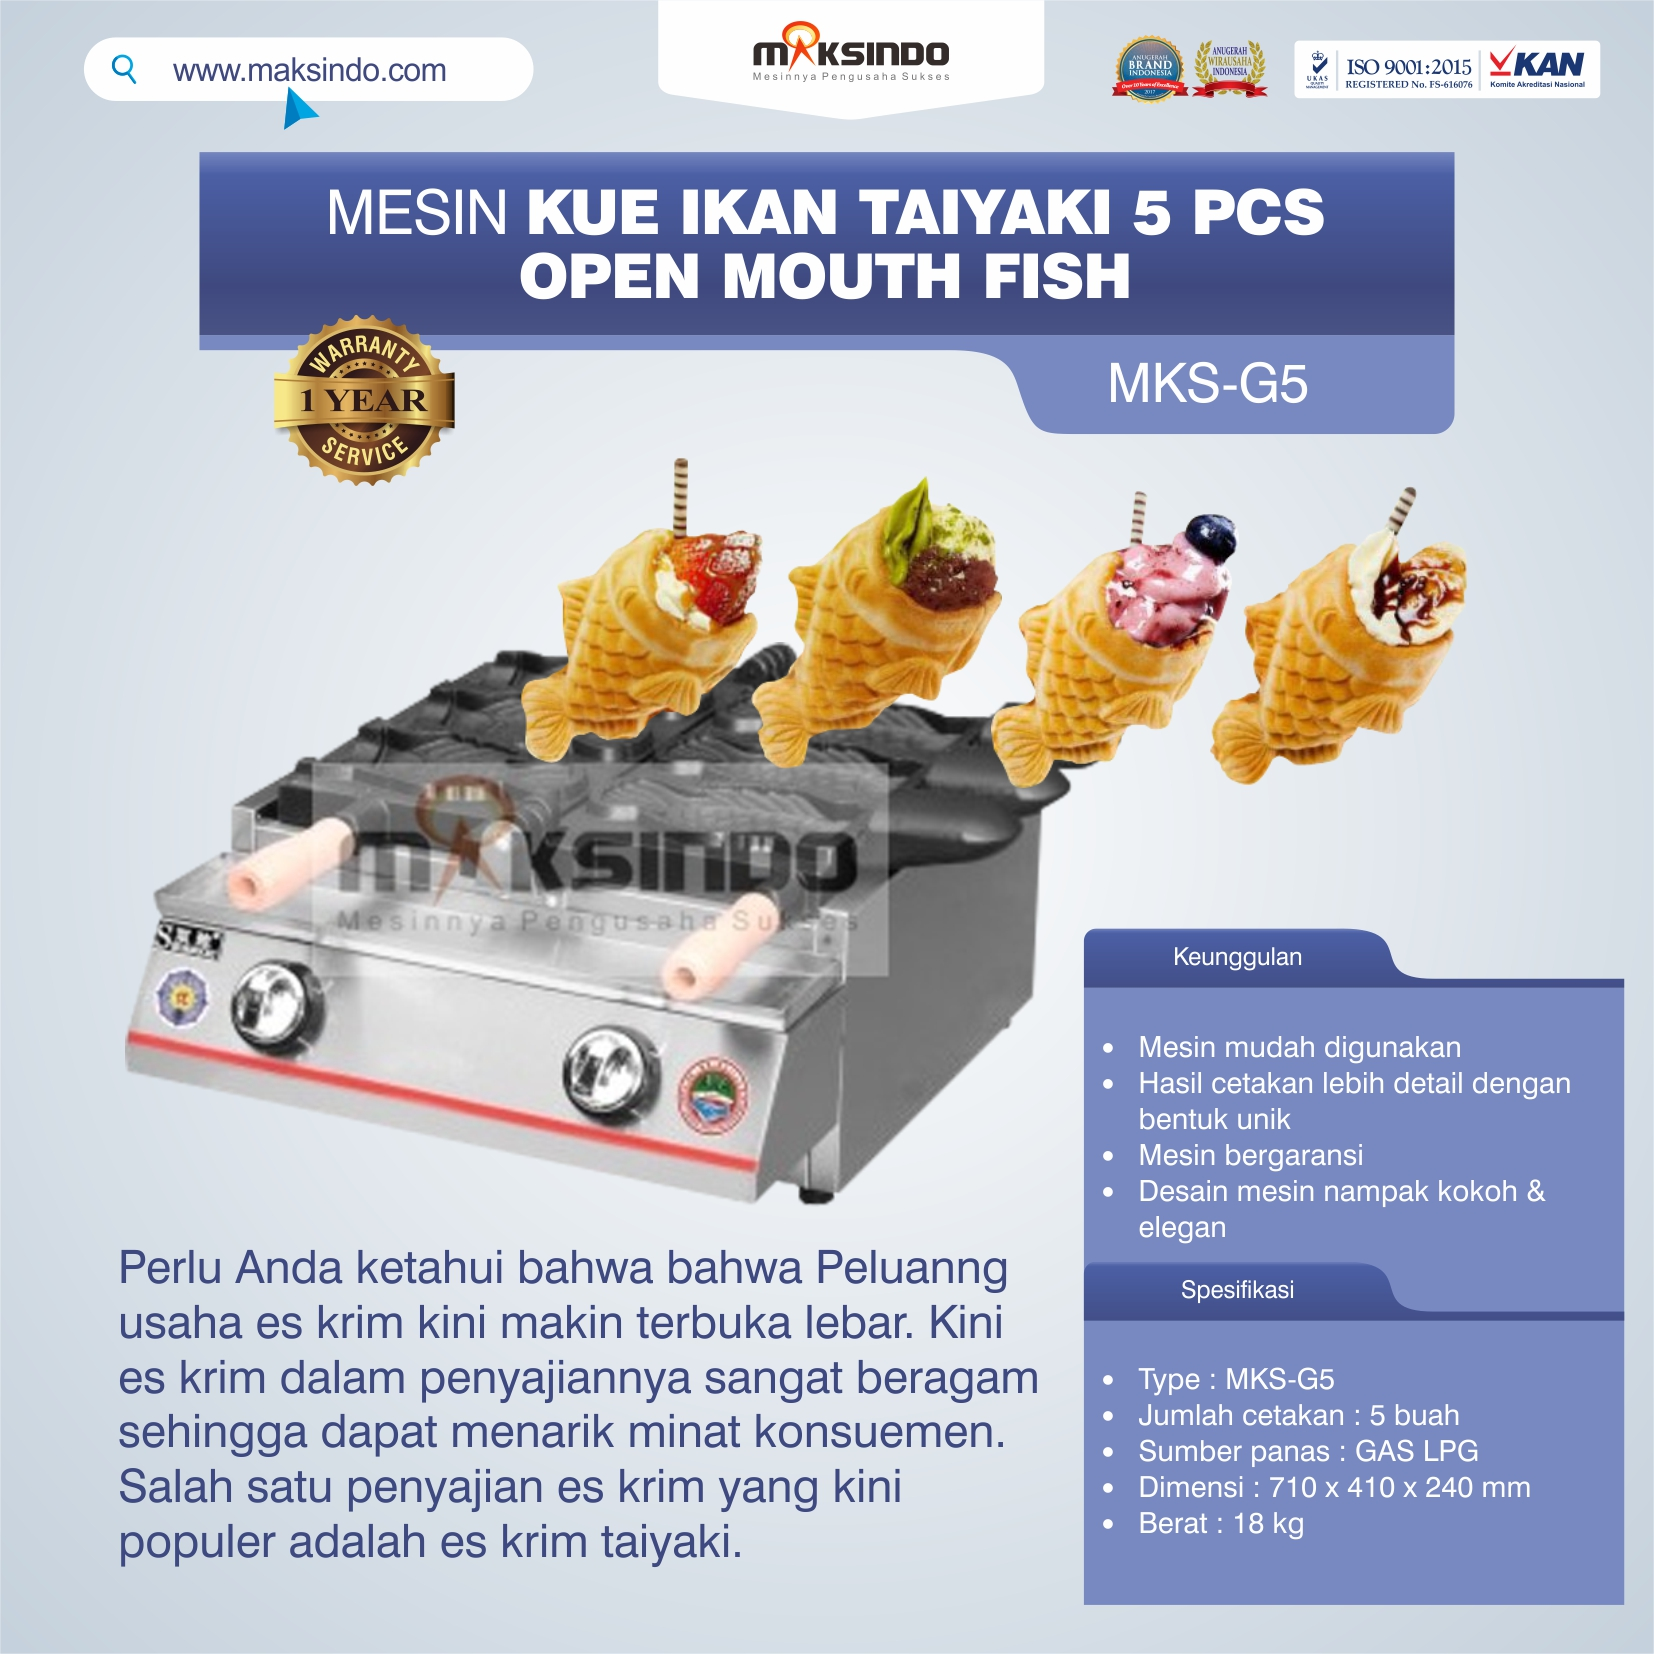 Mesin Kue Ikan Taiyaki 5 Pcs – Open Mouth Fish